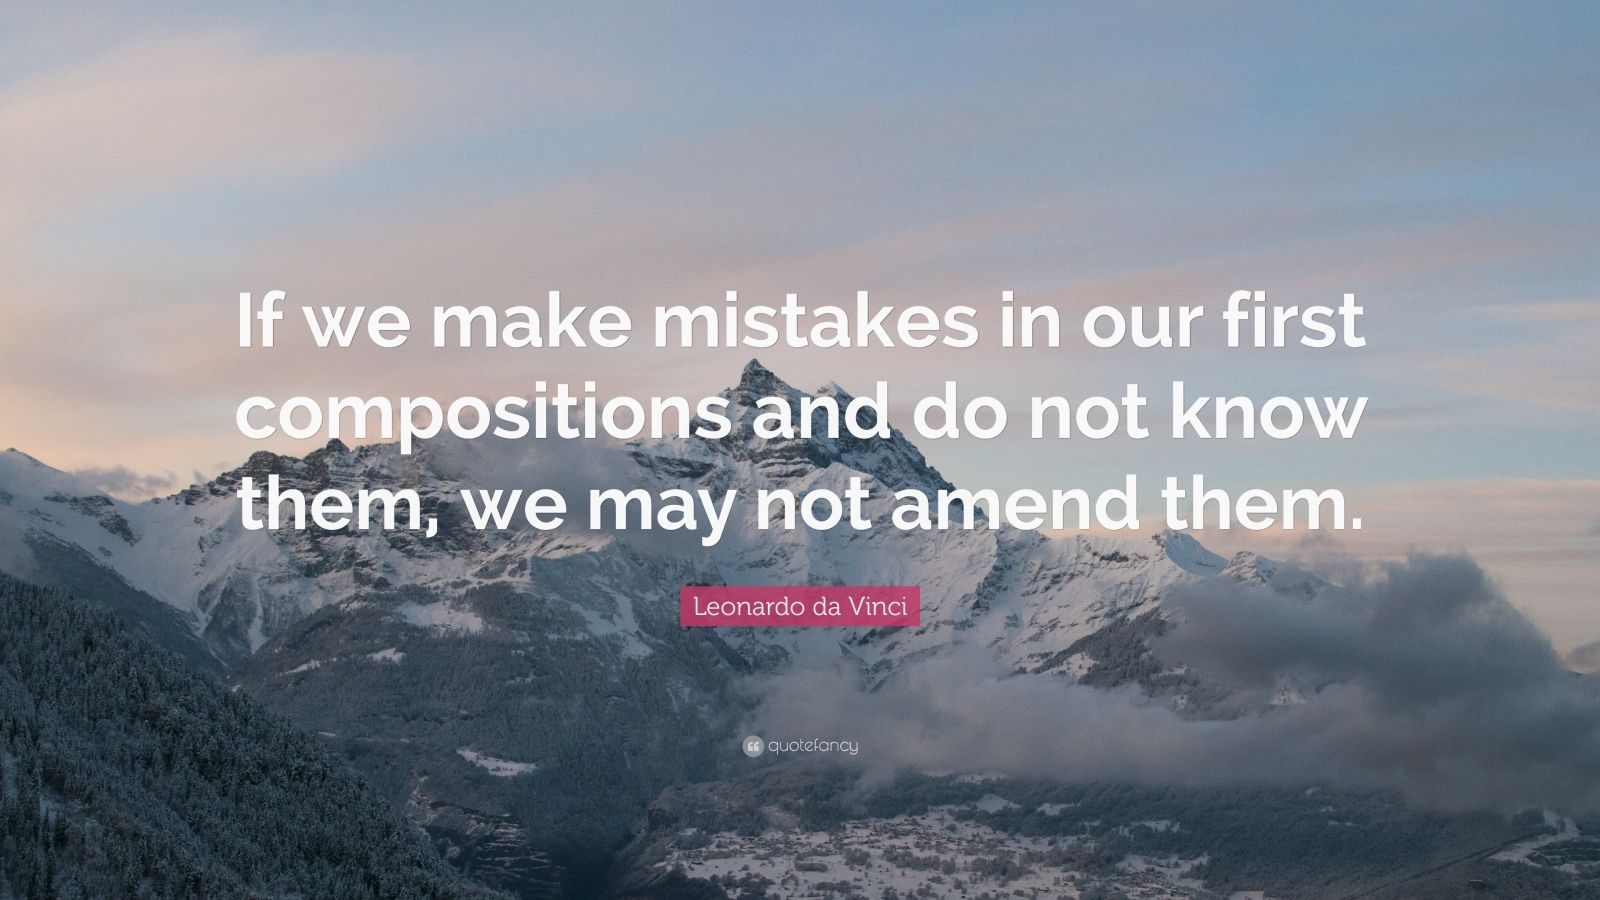 """Leonardo da Vinci Quote: """"If we make mistakes in our first compositions and do not know them, we may not amend them."""""""